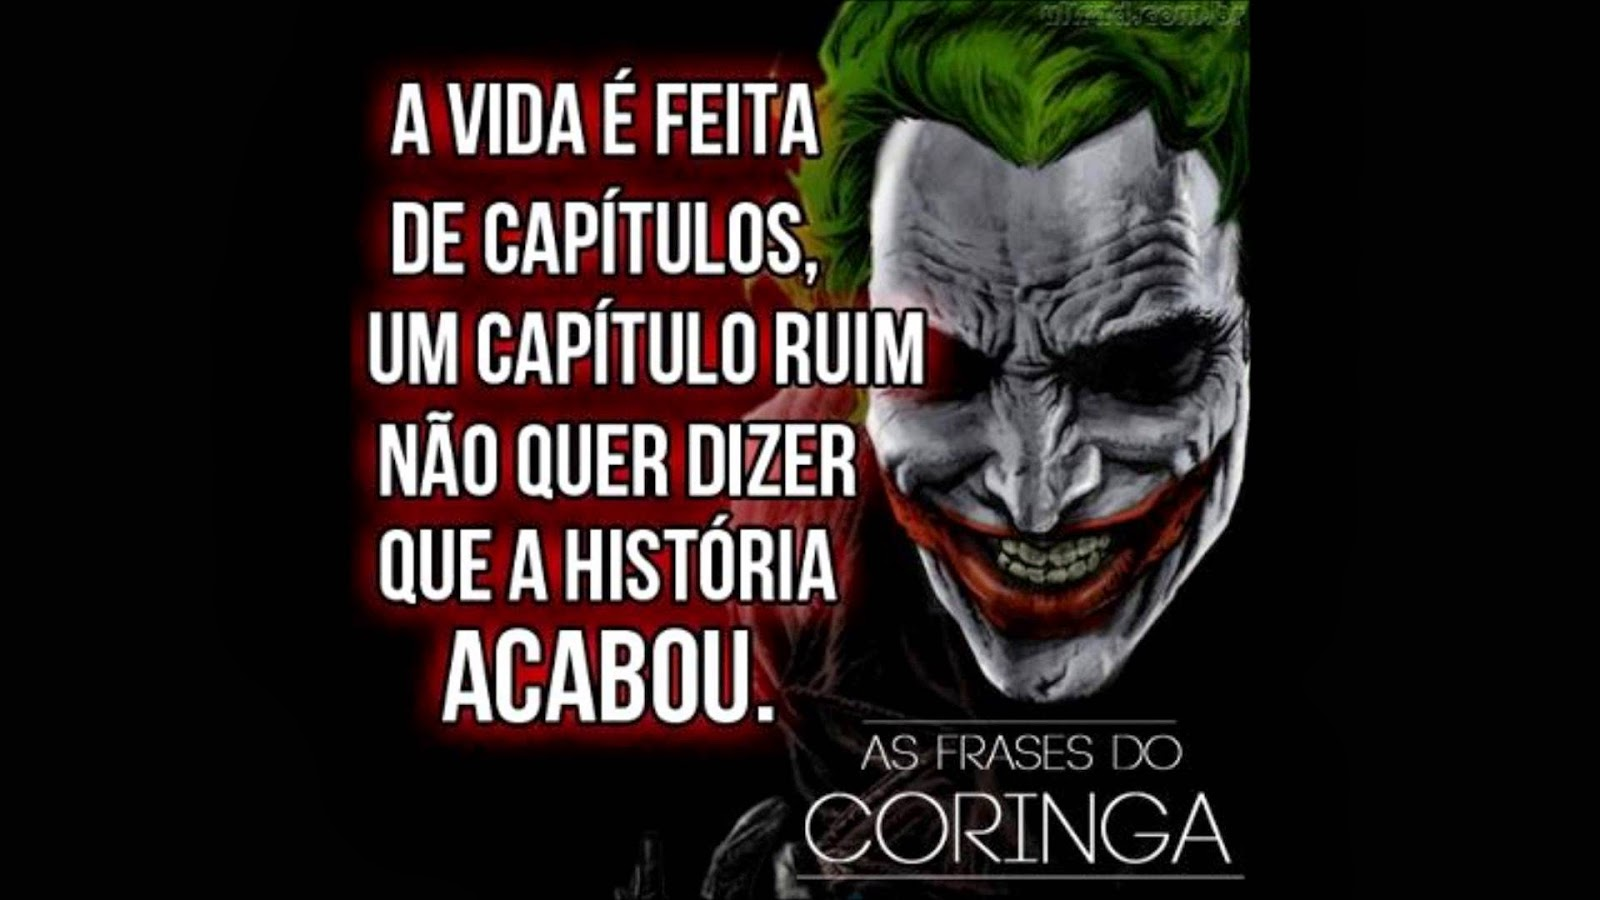 Frases Do Coringa Pensador Para Facebook: Frases Do Coringa 2014 Para Facebook